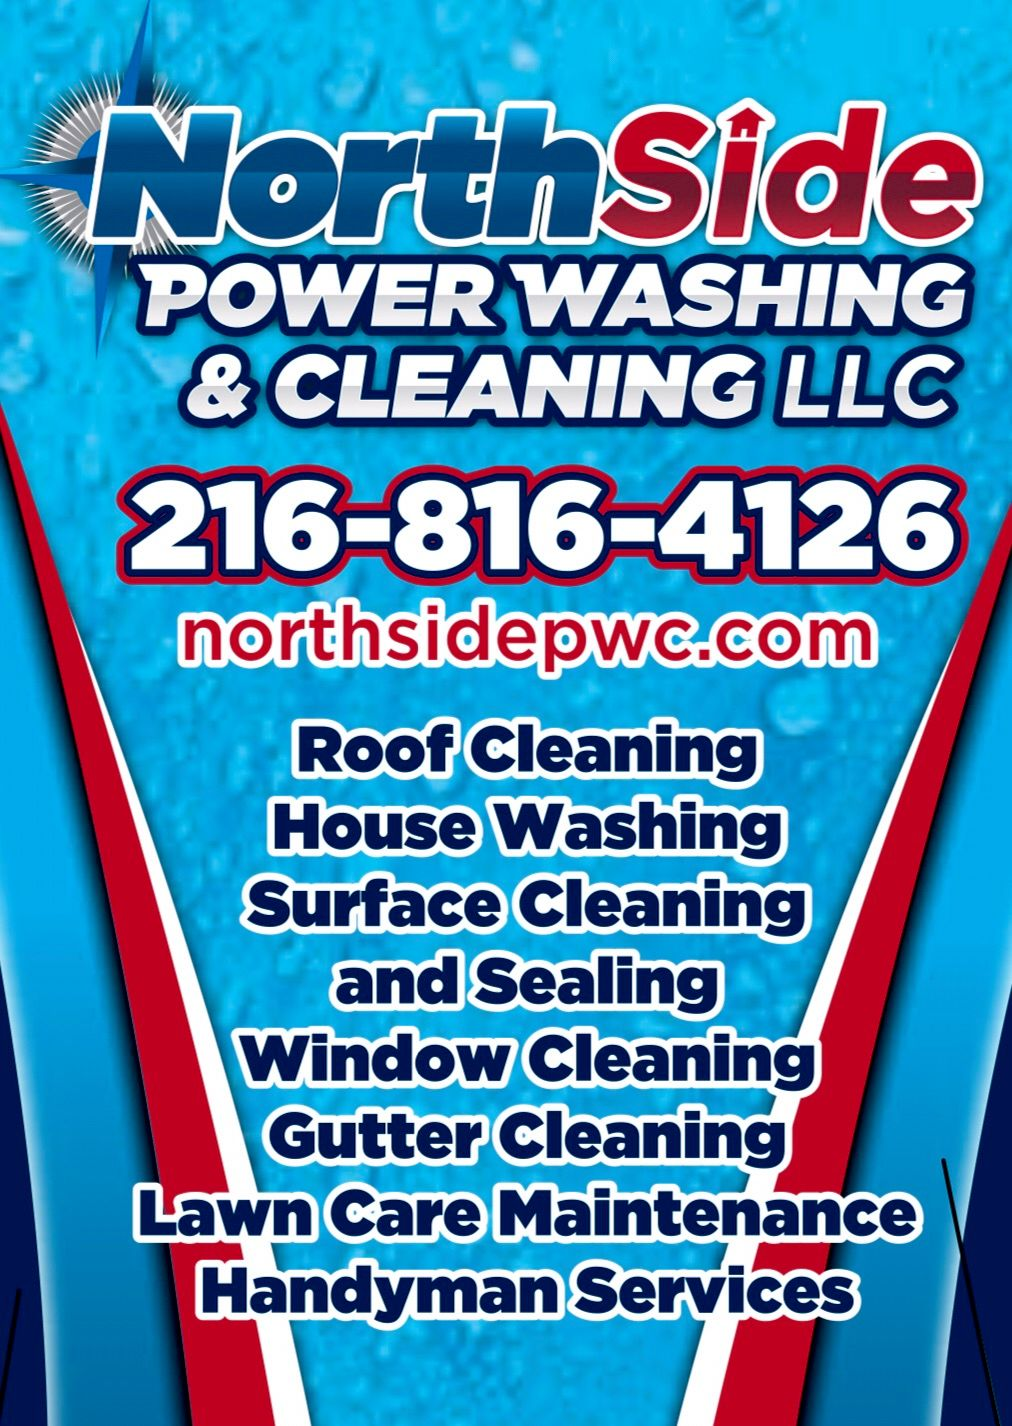 North Side Power Washing and Cleaning, LLC